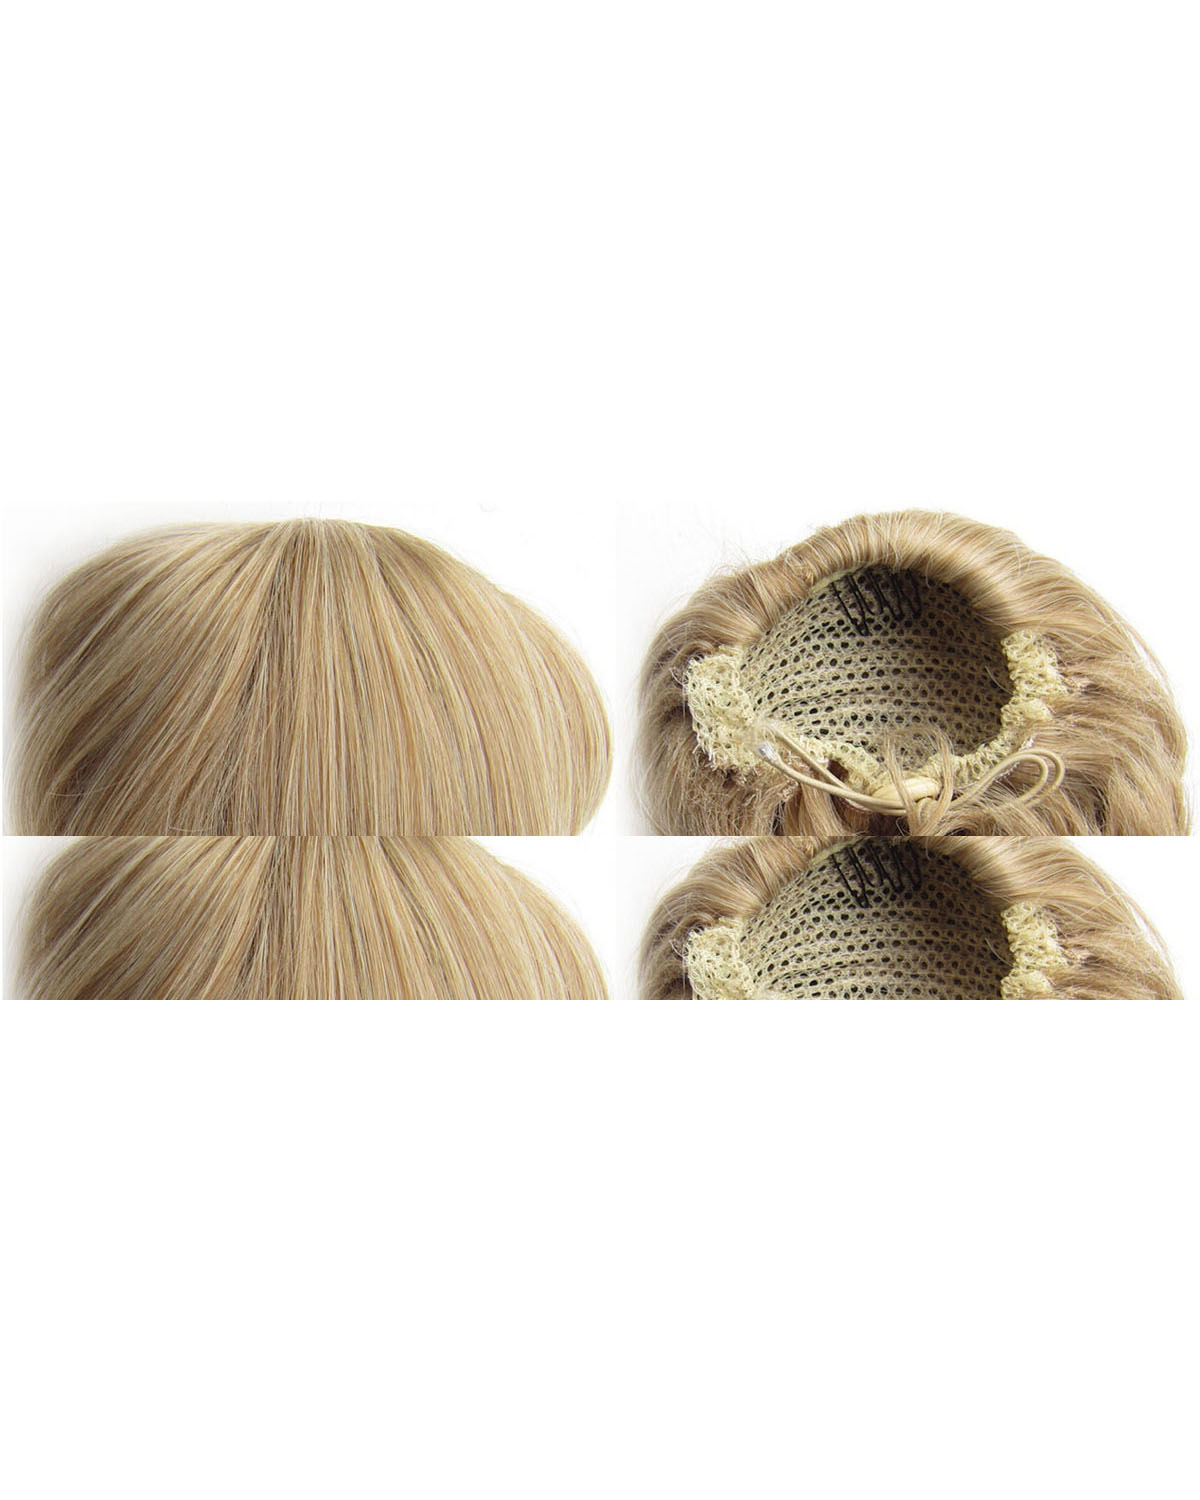 Ladies Shining Straight Short Hair Buns Drawstring Synthetic Hair Extension Bride ScrunchiesM27/613